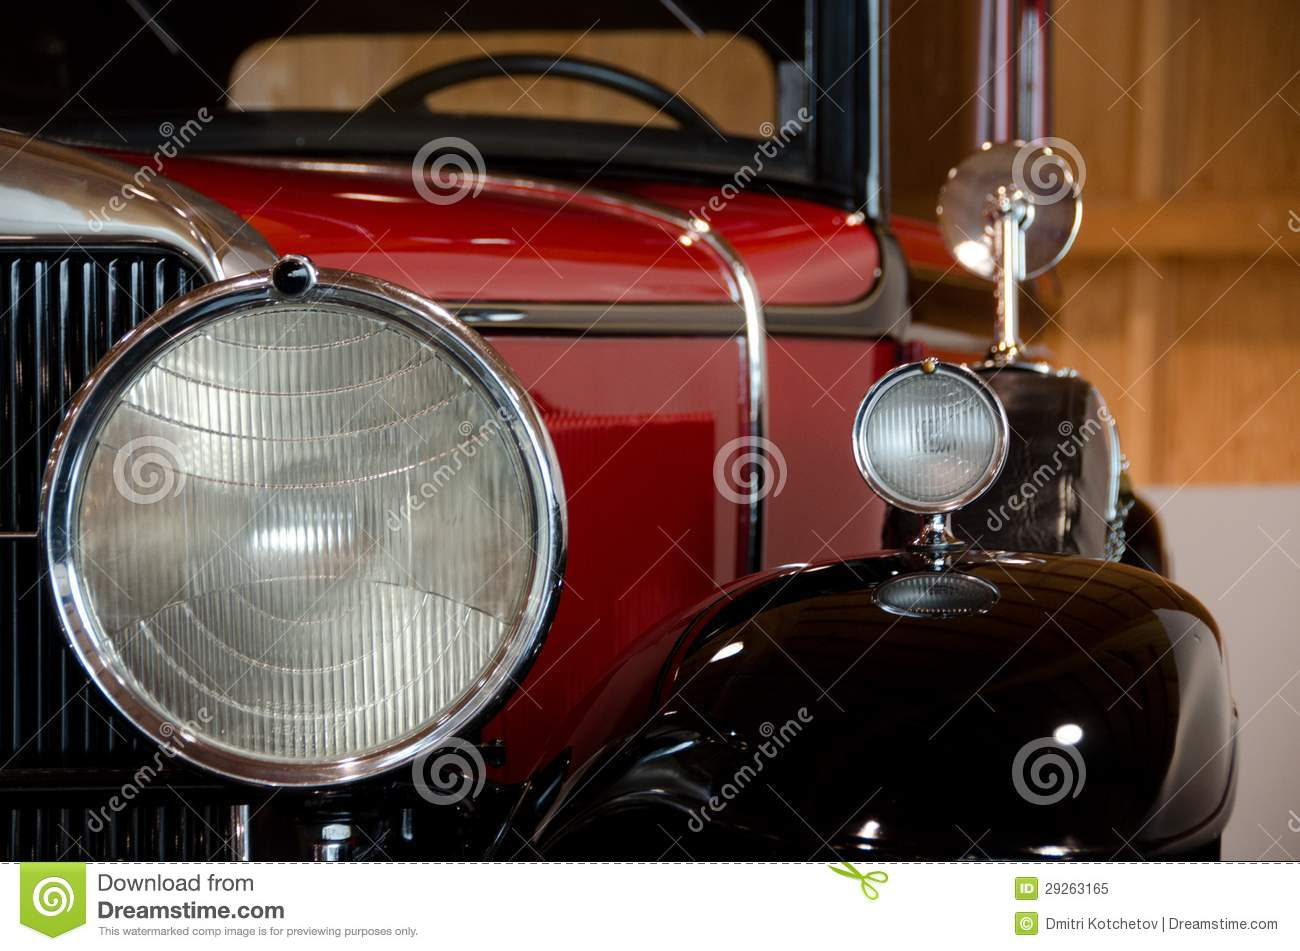 Headlights And Mirrors Of An Antique Car Stock Image - Image of ...